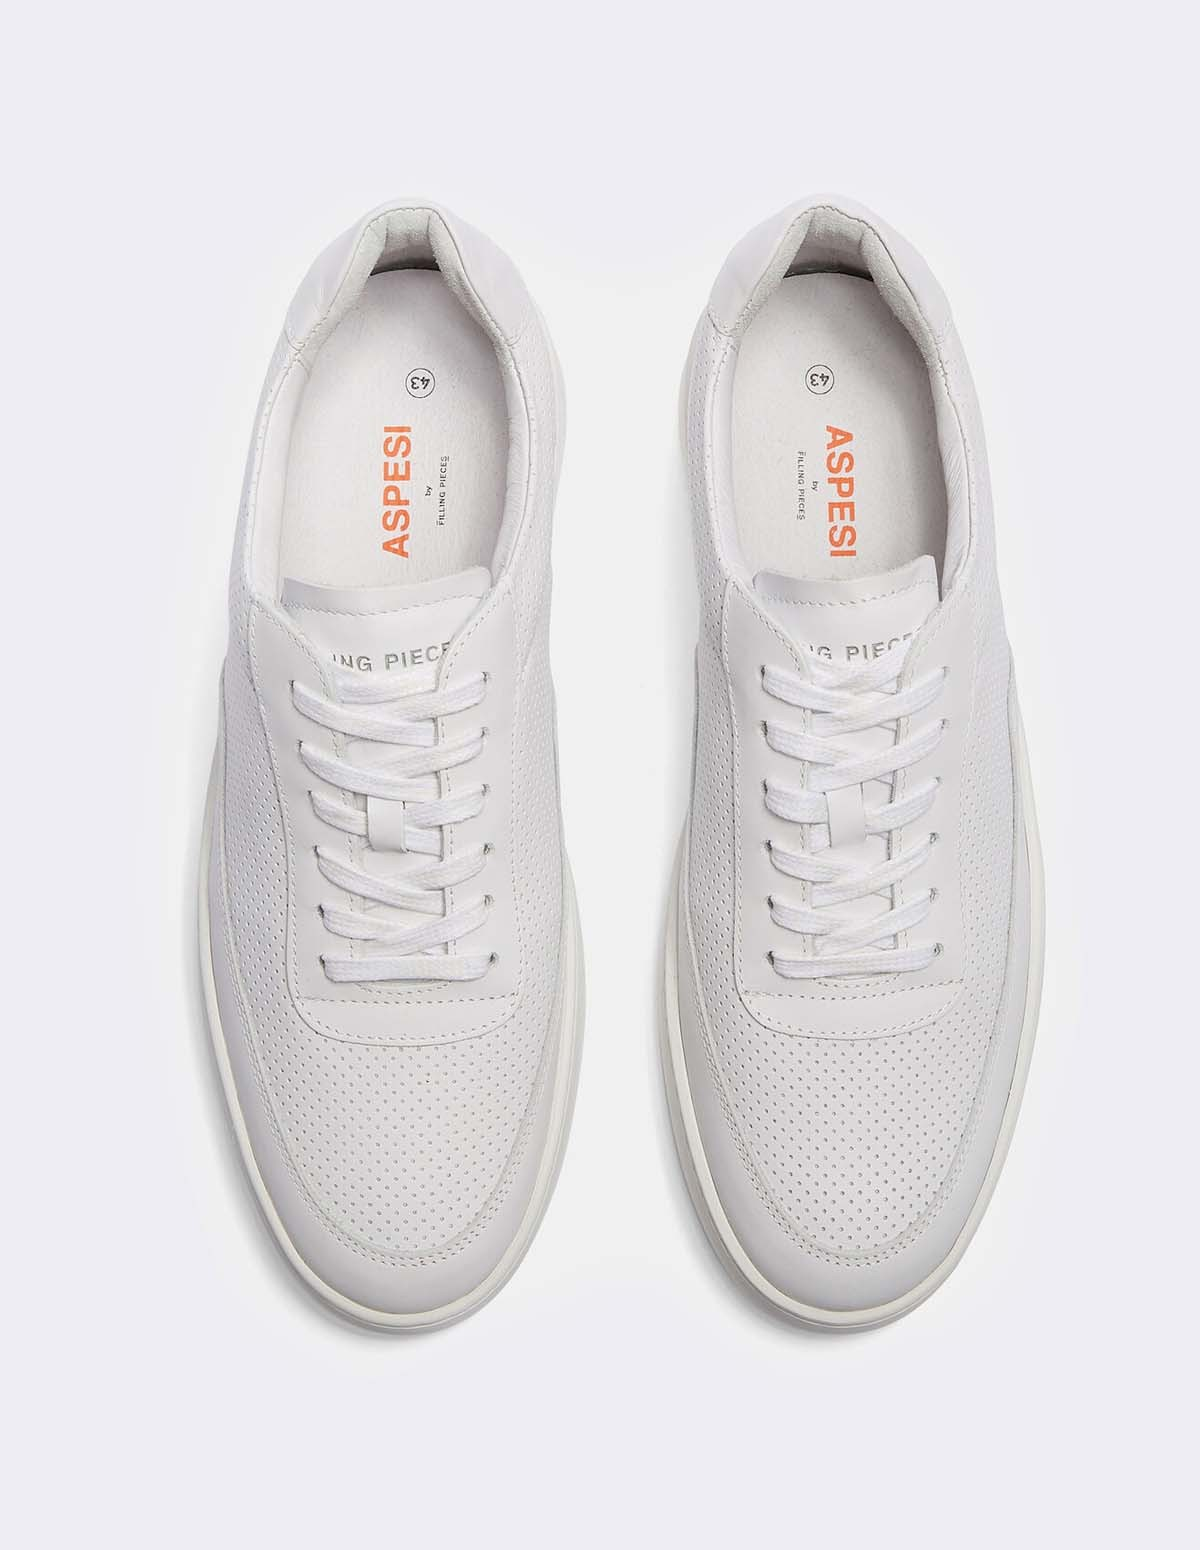 Aspesi X Filling Pieces - WHITE